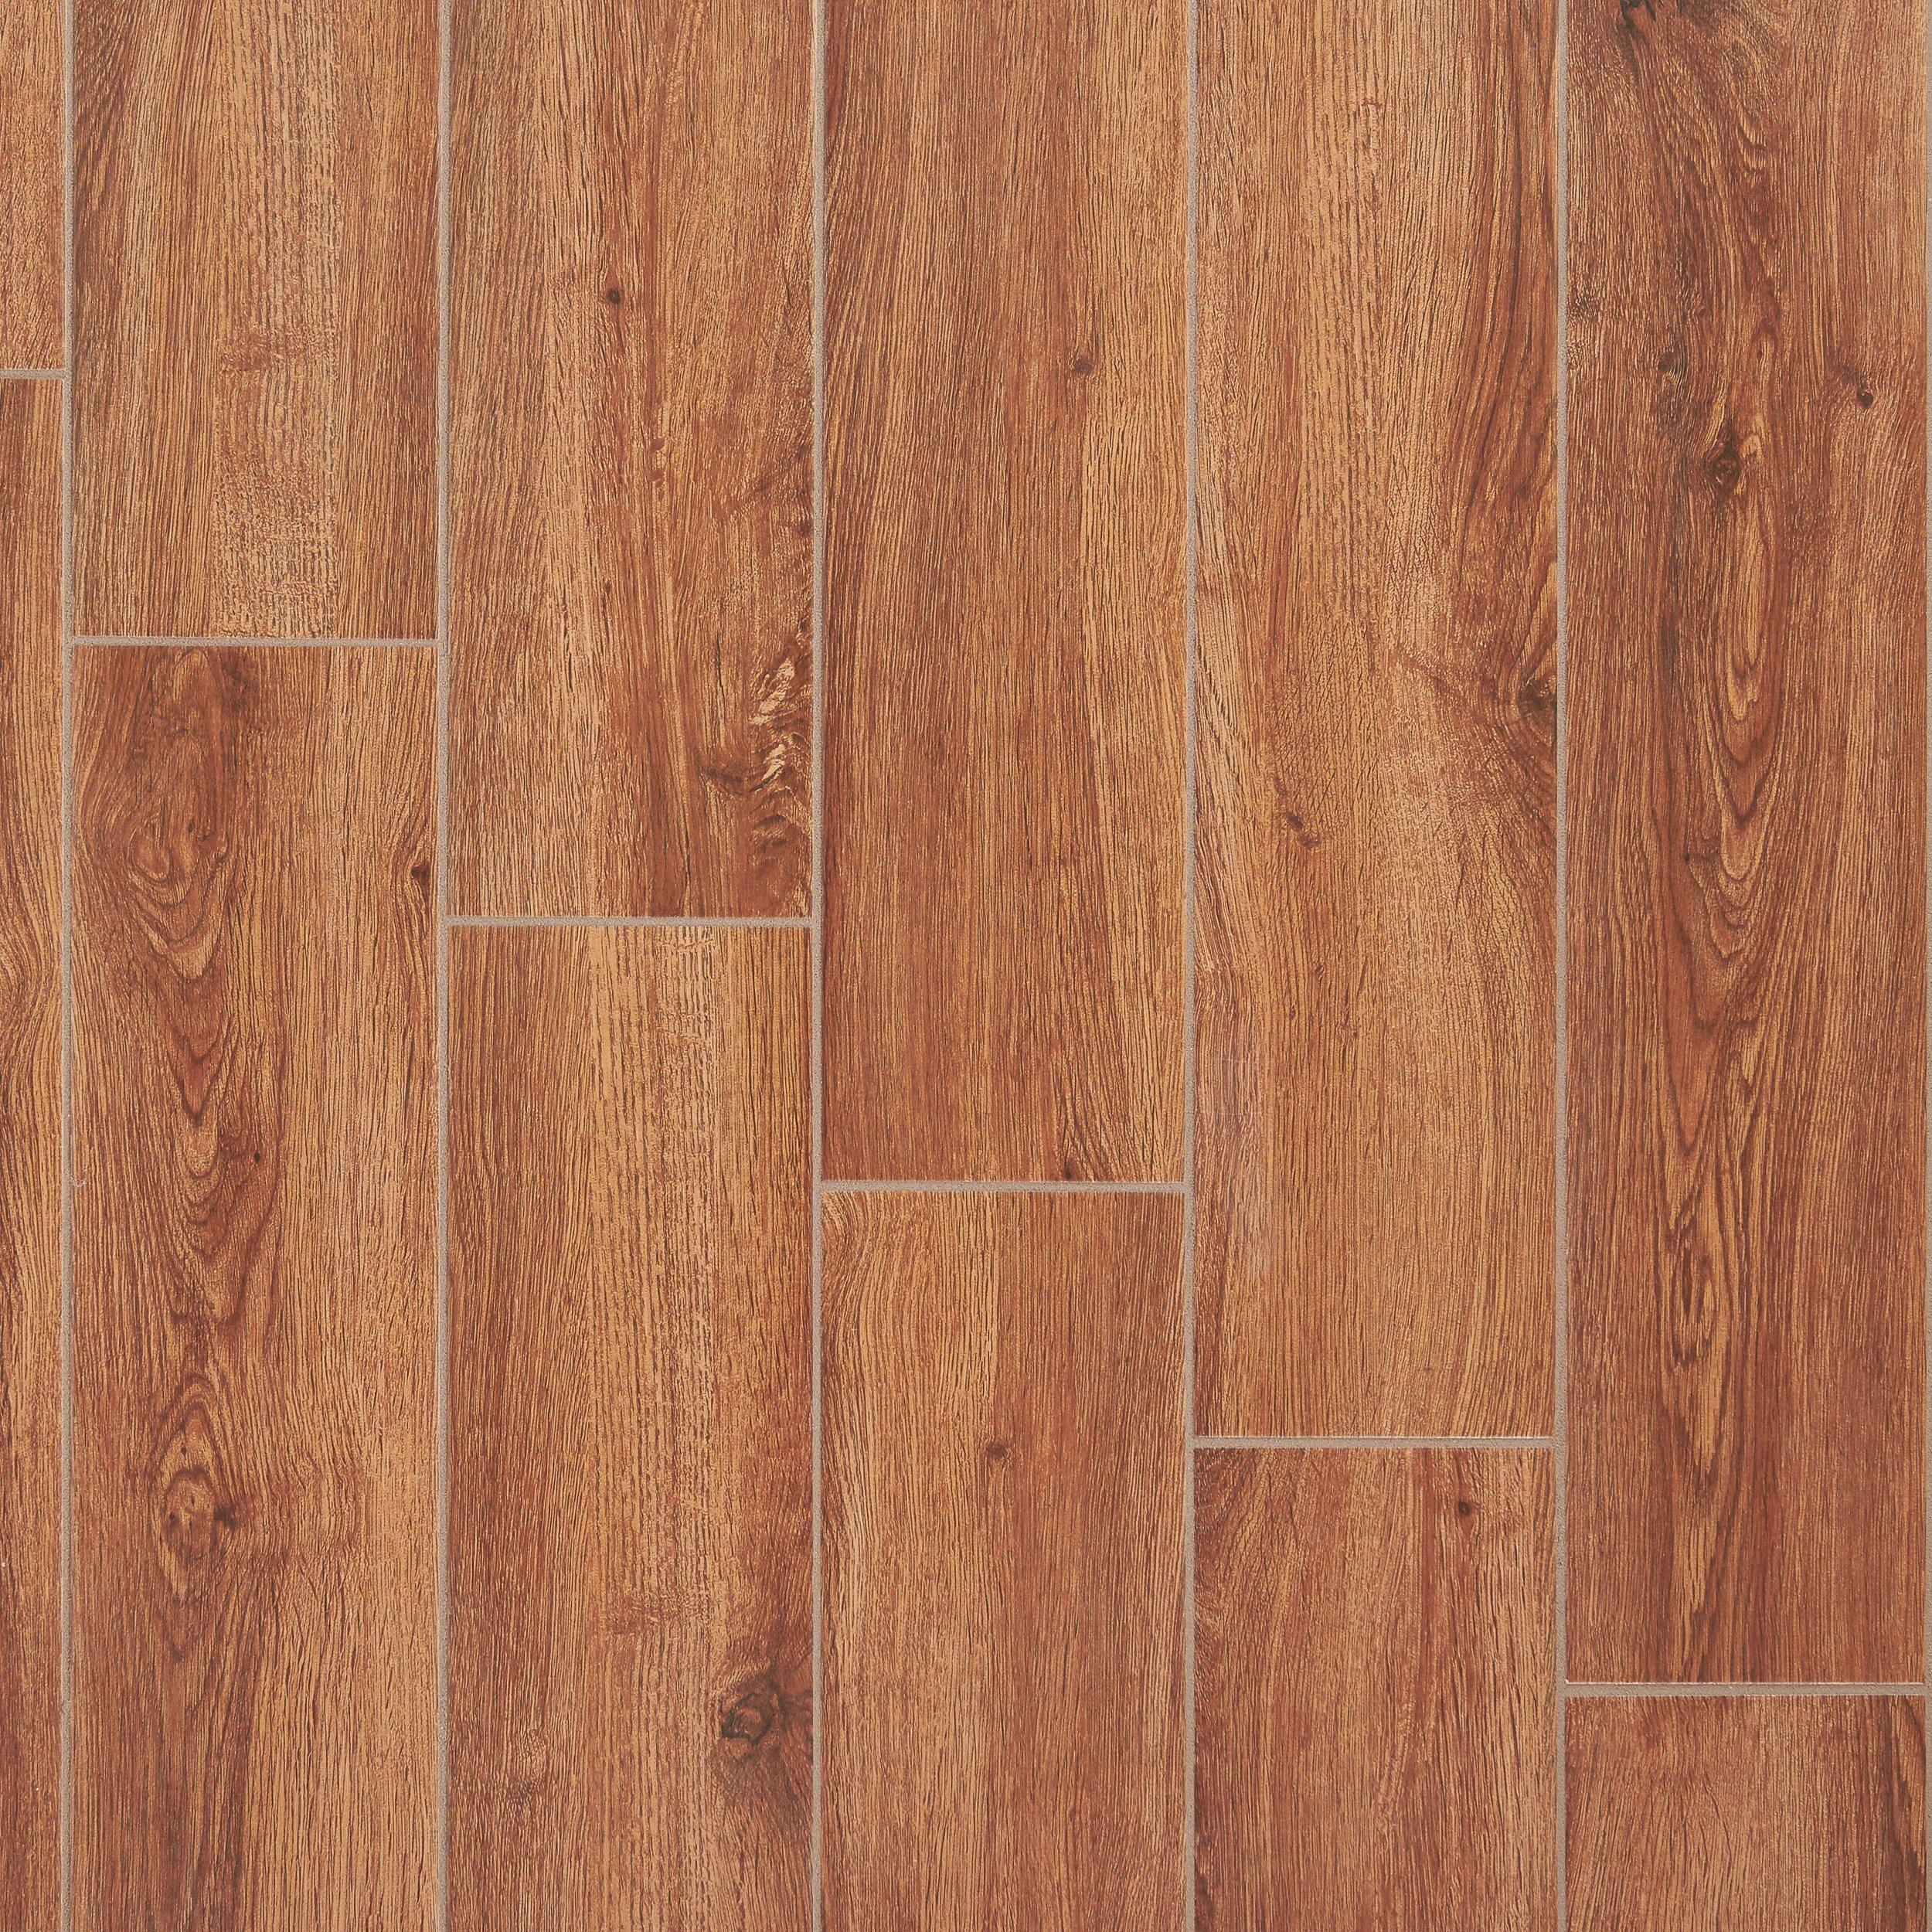 Fulham Red Wood Plank Ceramic Tile   6in. X 32in.   100131457 | Floor And  Decor